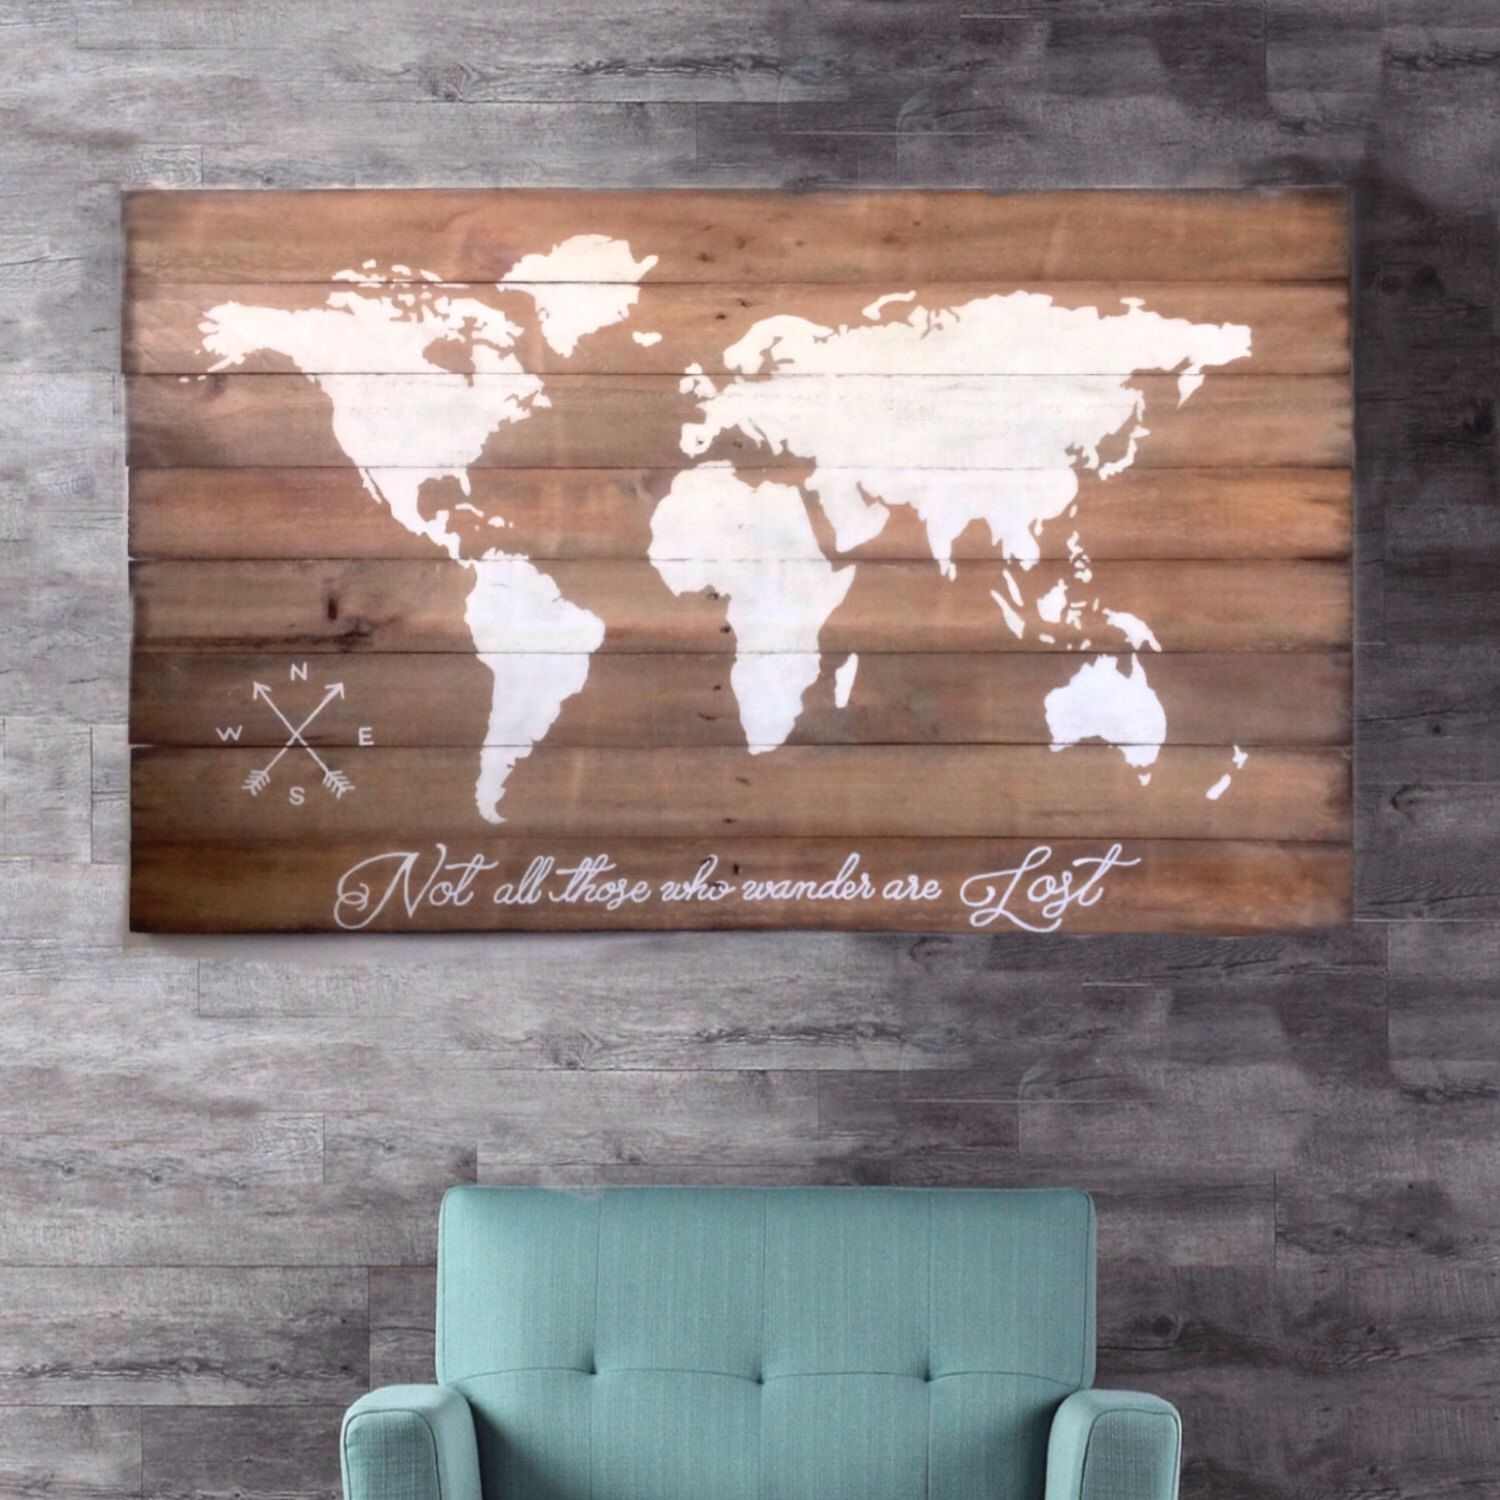 Wood world map wall art large wall art map reclaimed wood wood world map wall art large wall art map reclaimed wood wood wall art wood signs riversidestudio rustic pallet wood furniture gumiabroncs Choice Image